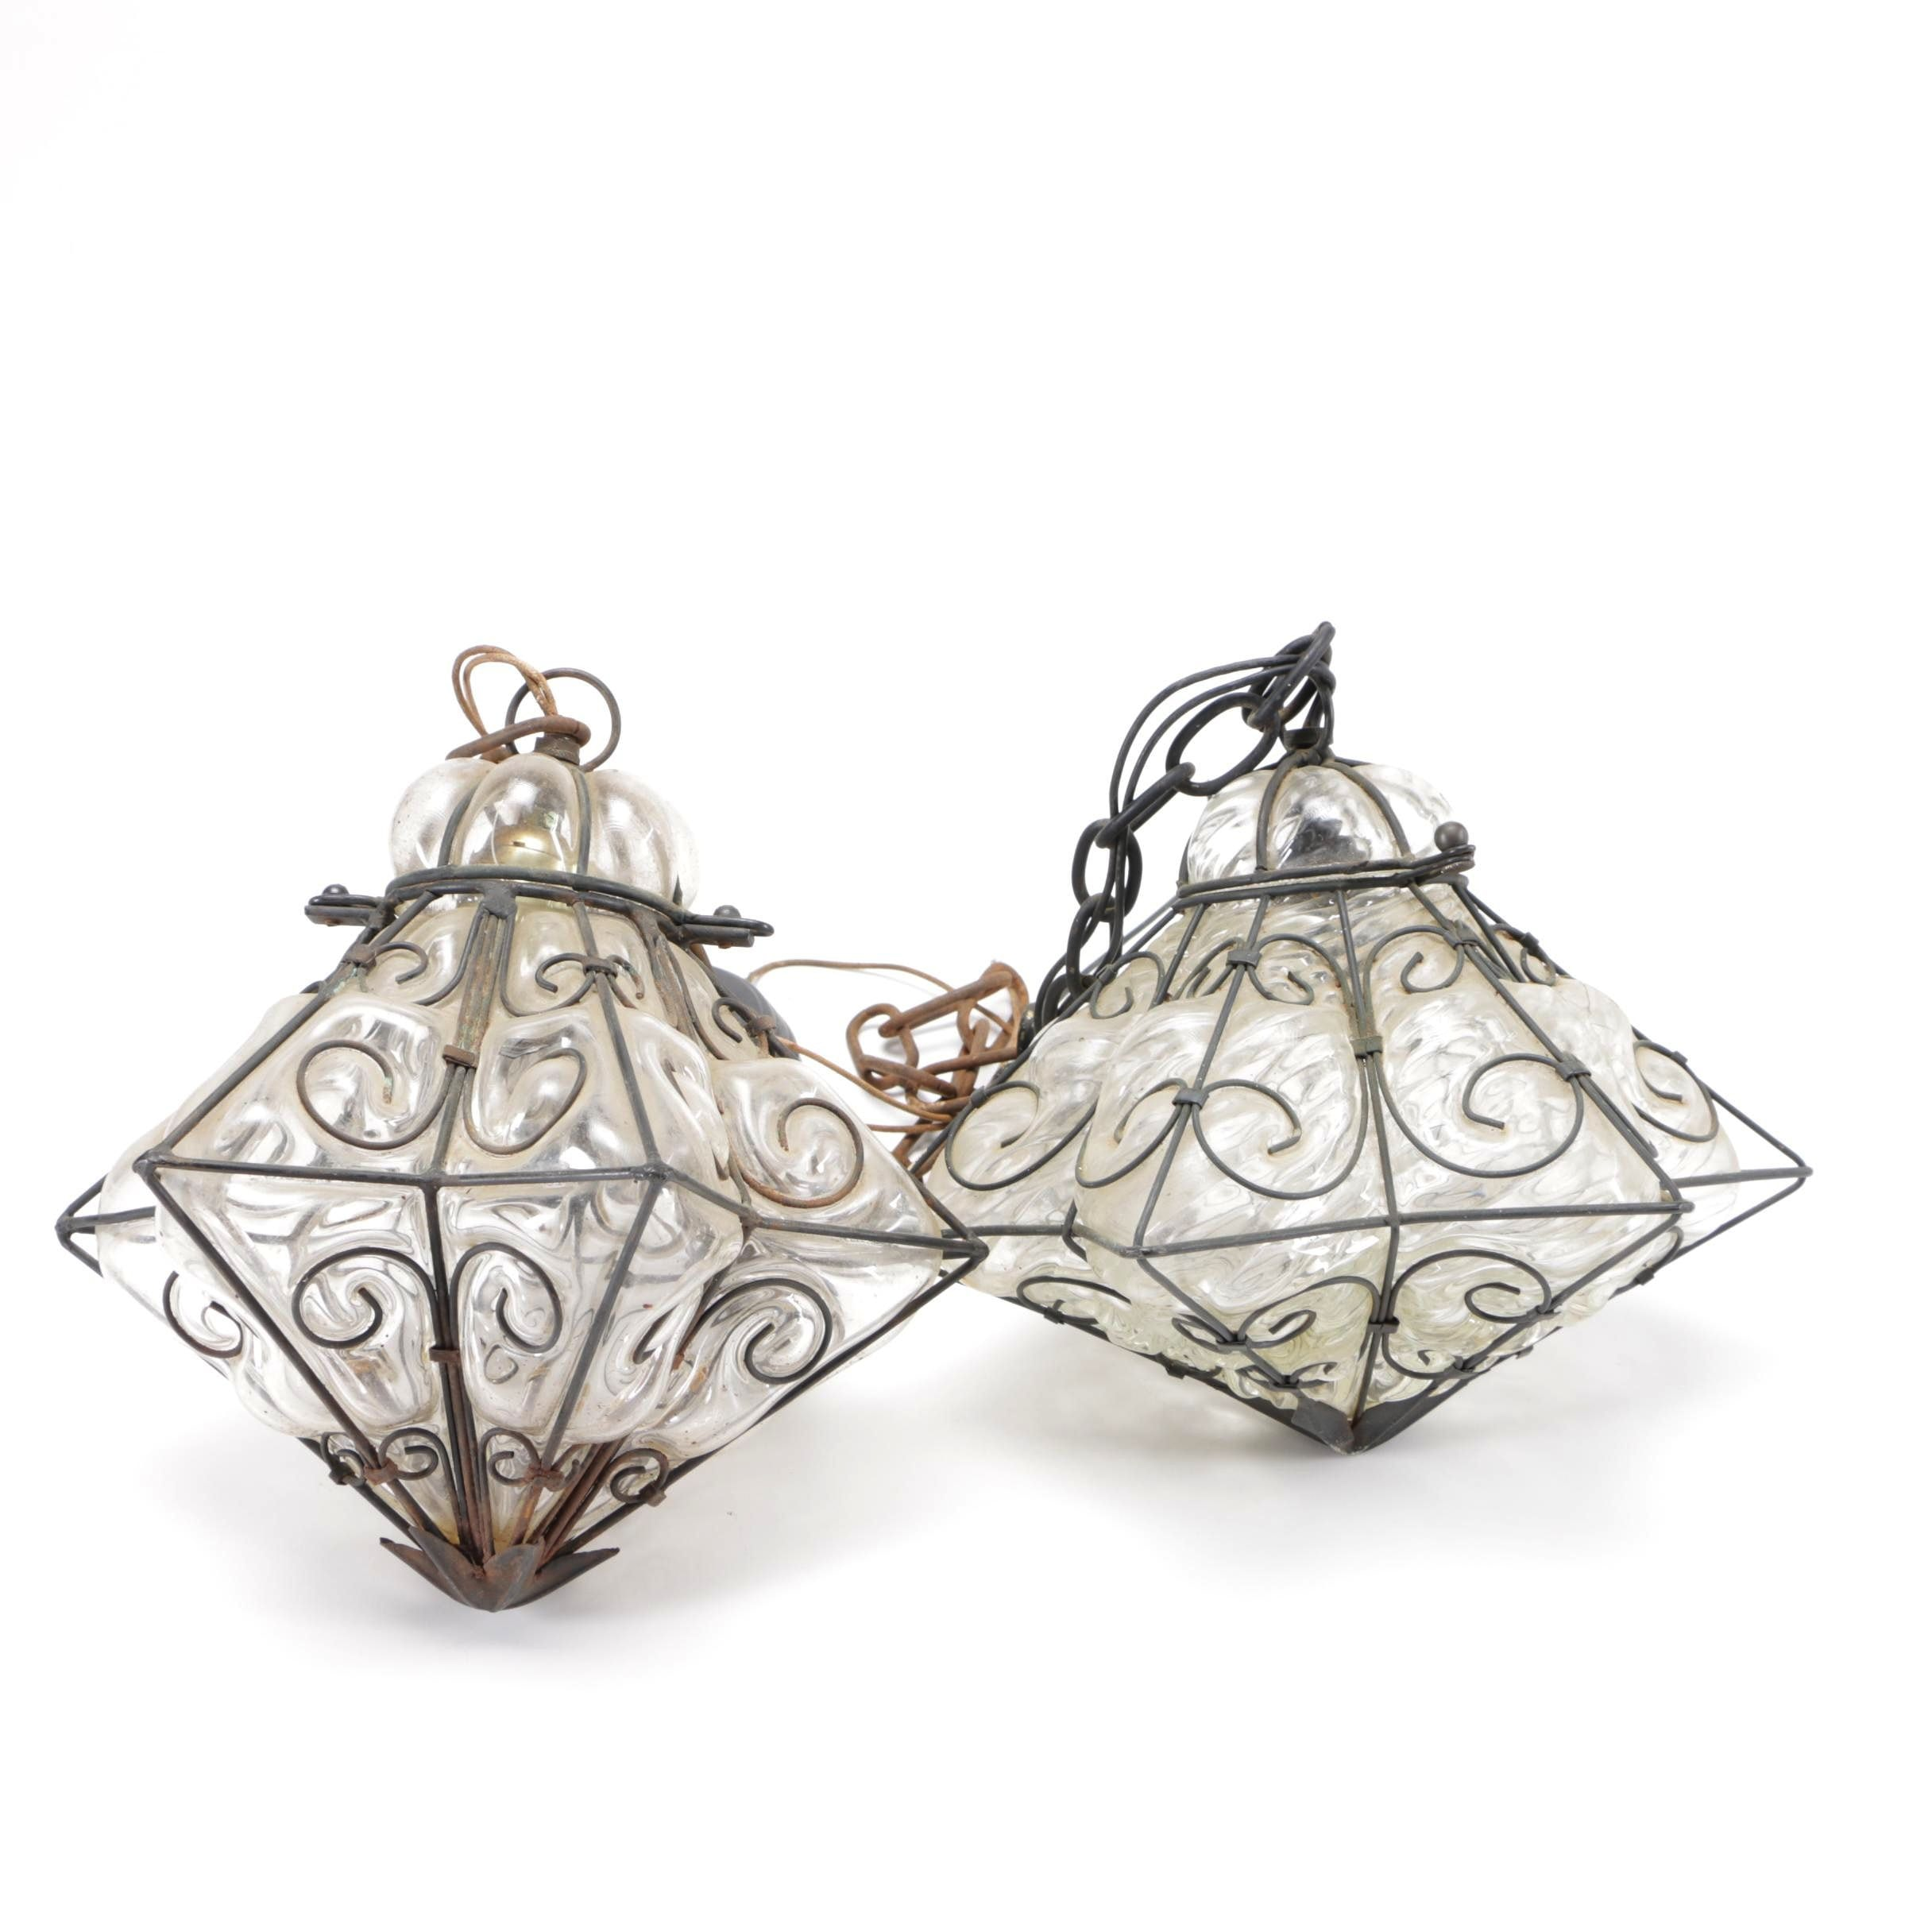 Glass and Metal Star Shaped Lights